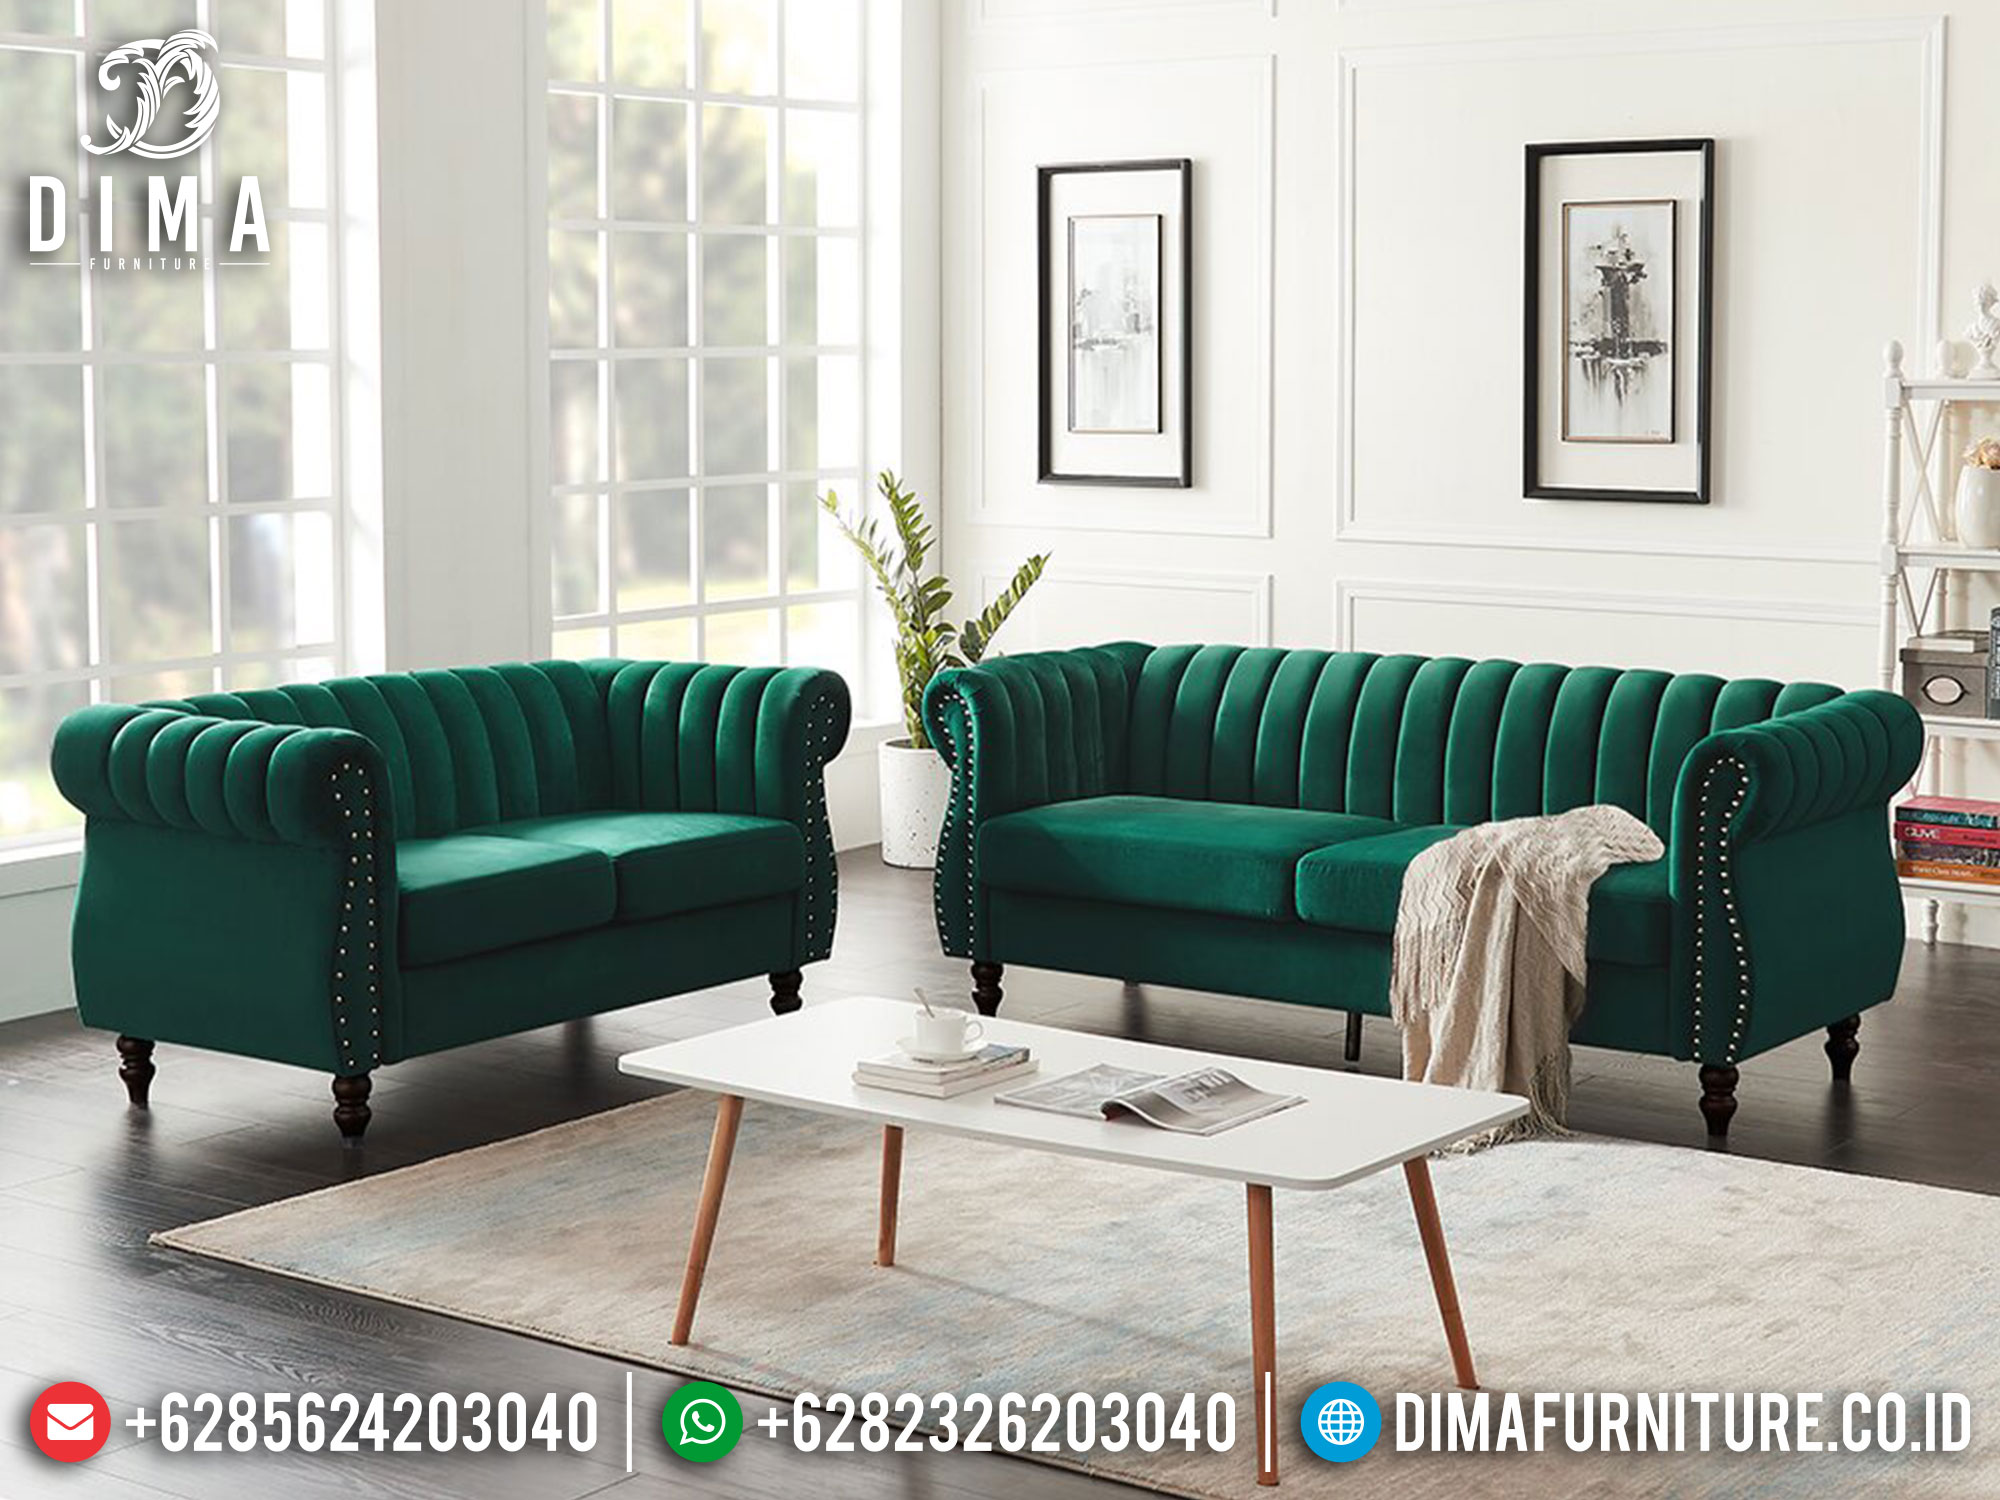 Promo Ramadan Sofa Tamu Minimalis Jati Natural Classic Color New Furniture Jepara Mm-1084